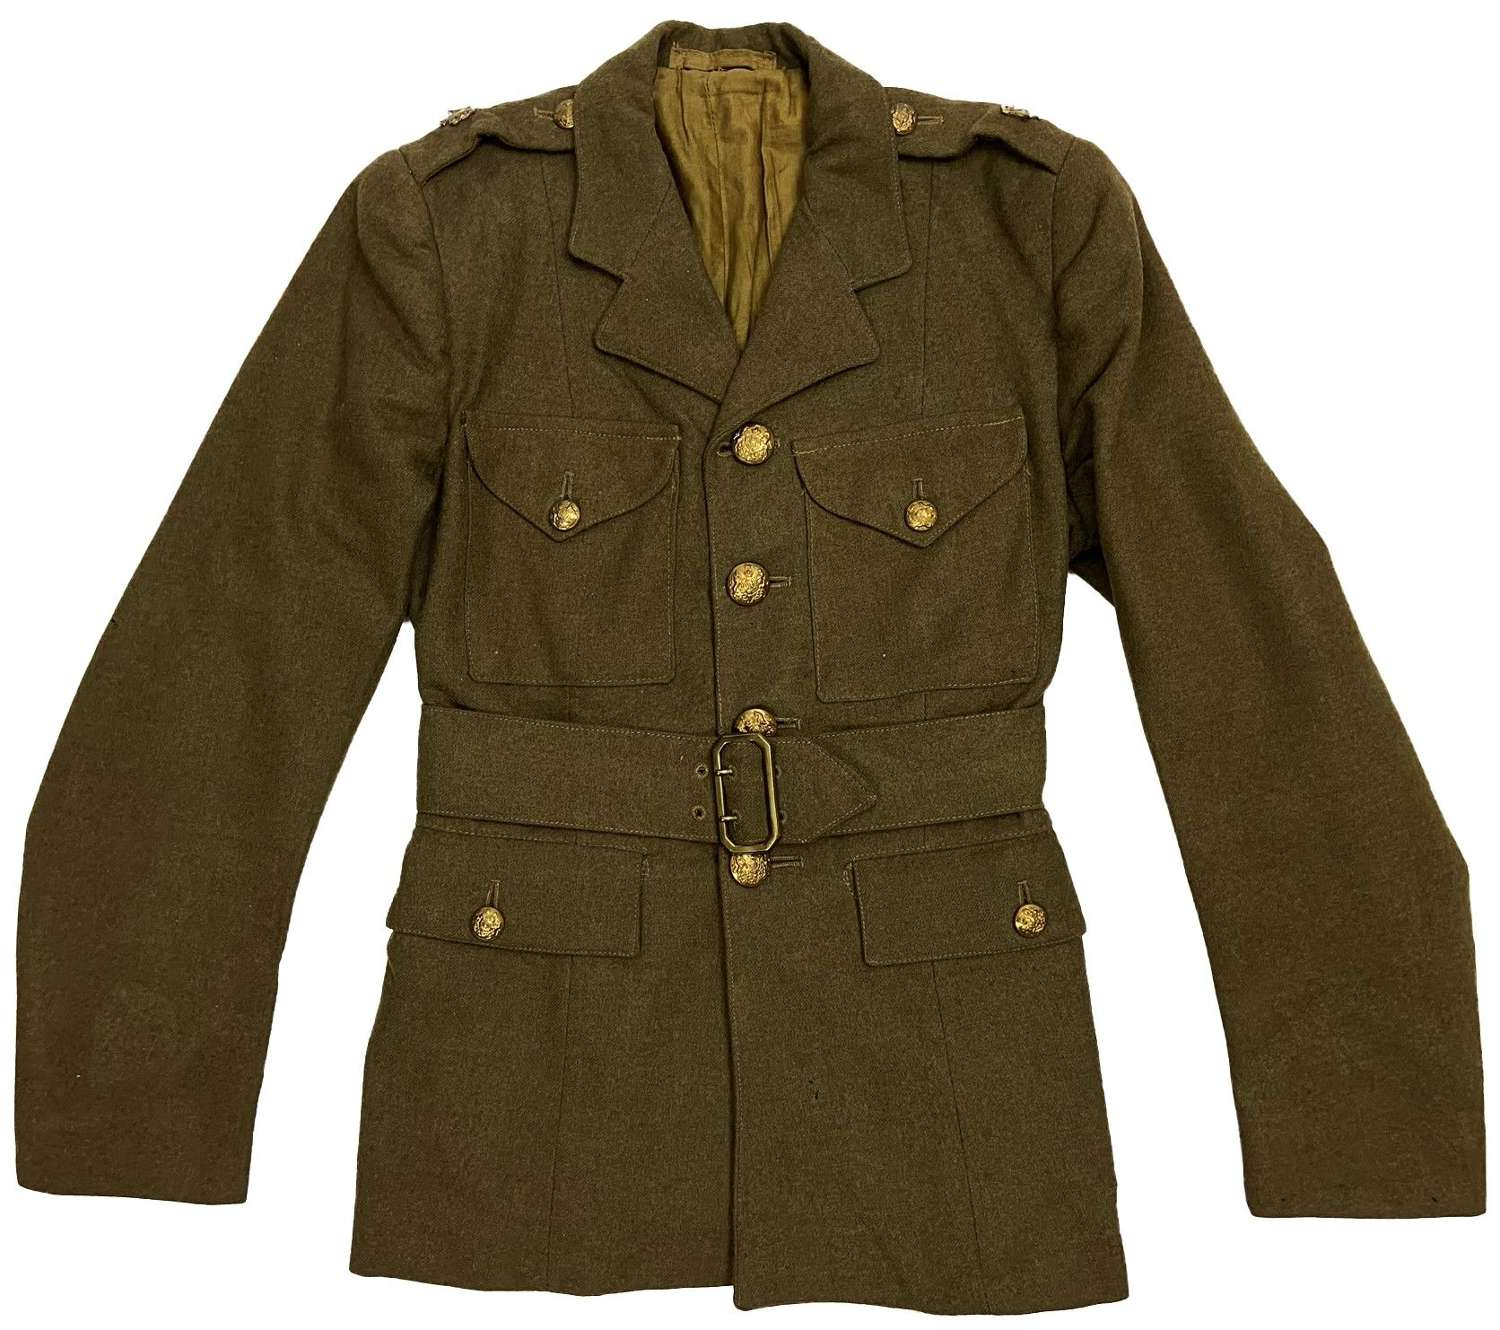 Original 1942 Dated Auxiliary Territorial Service Tunic - Size No. 1